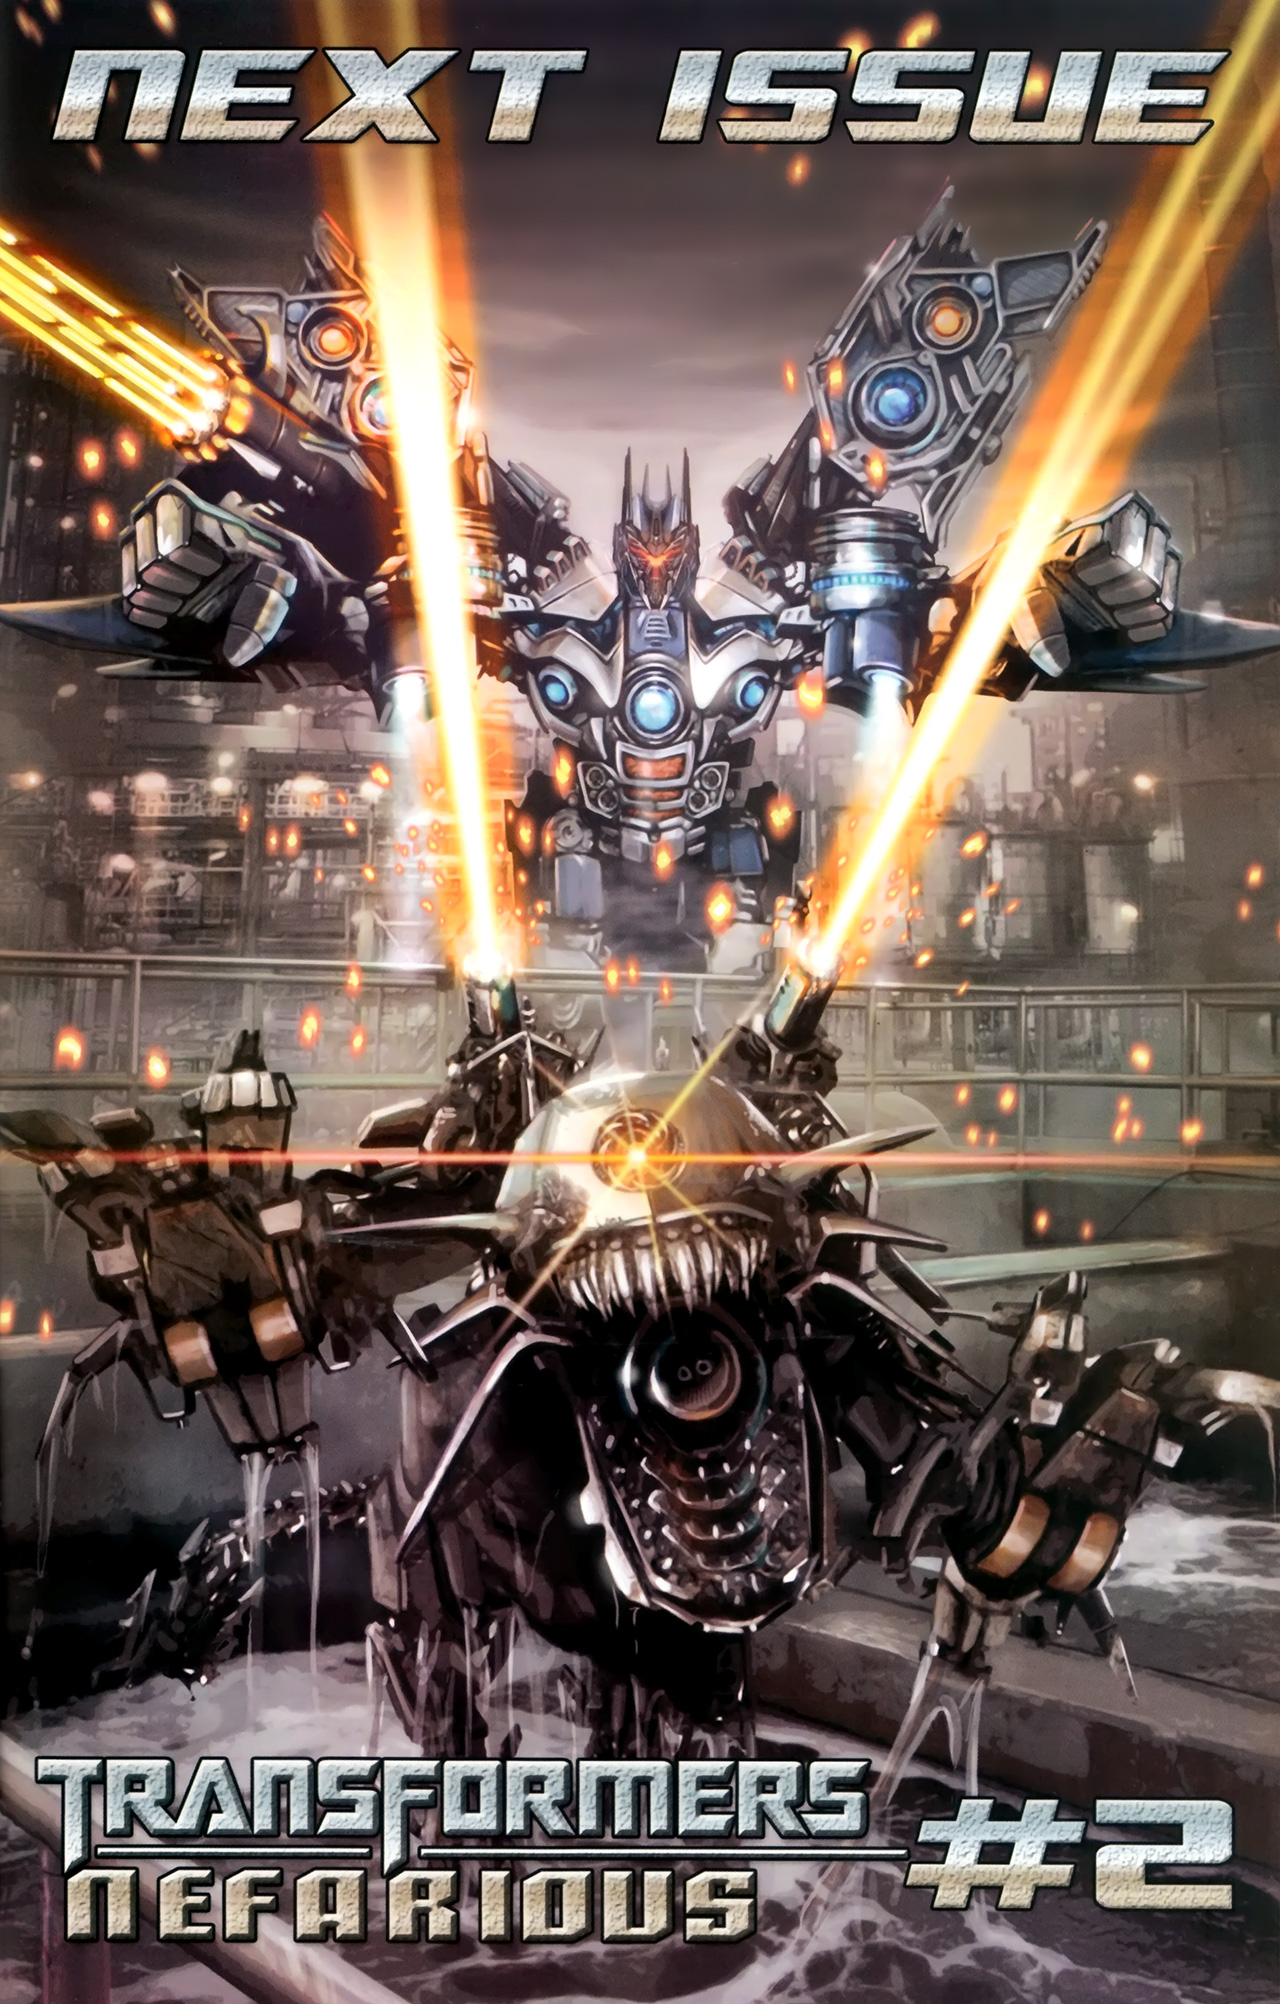 Read online Transformers: Nefarious comic -  Issue #1 - 27